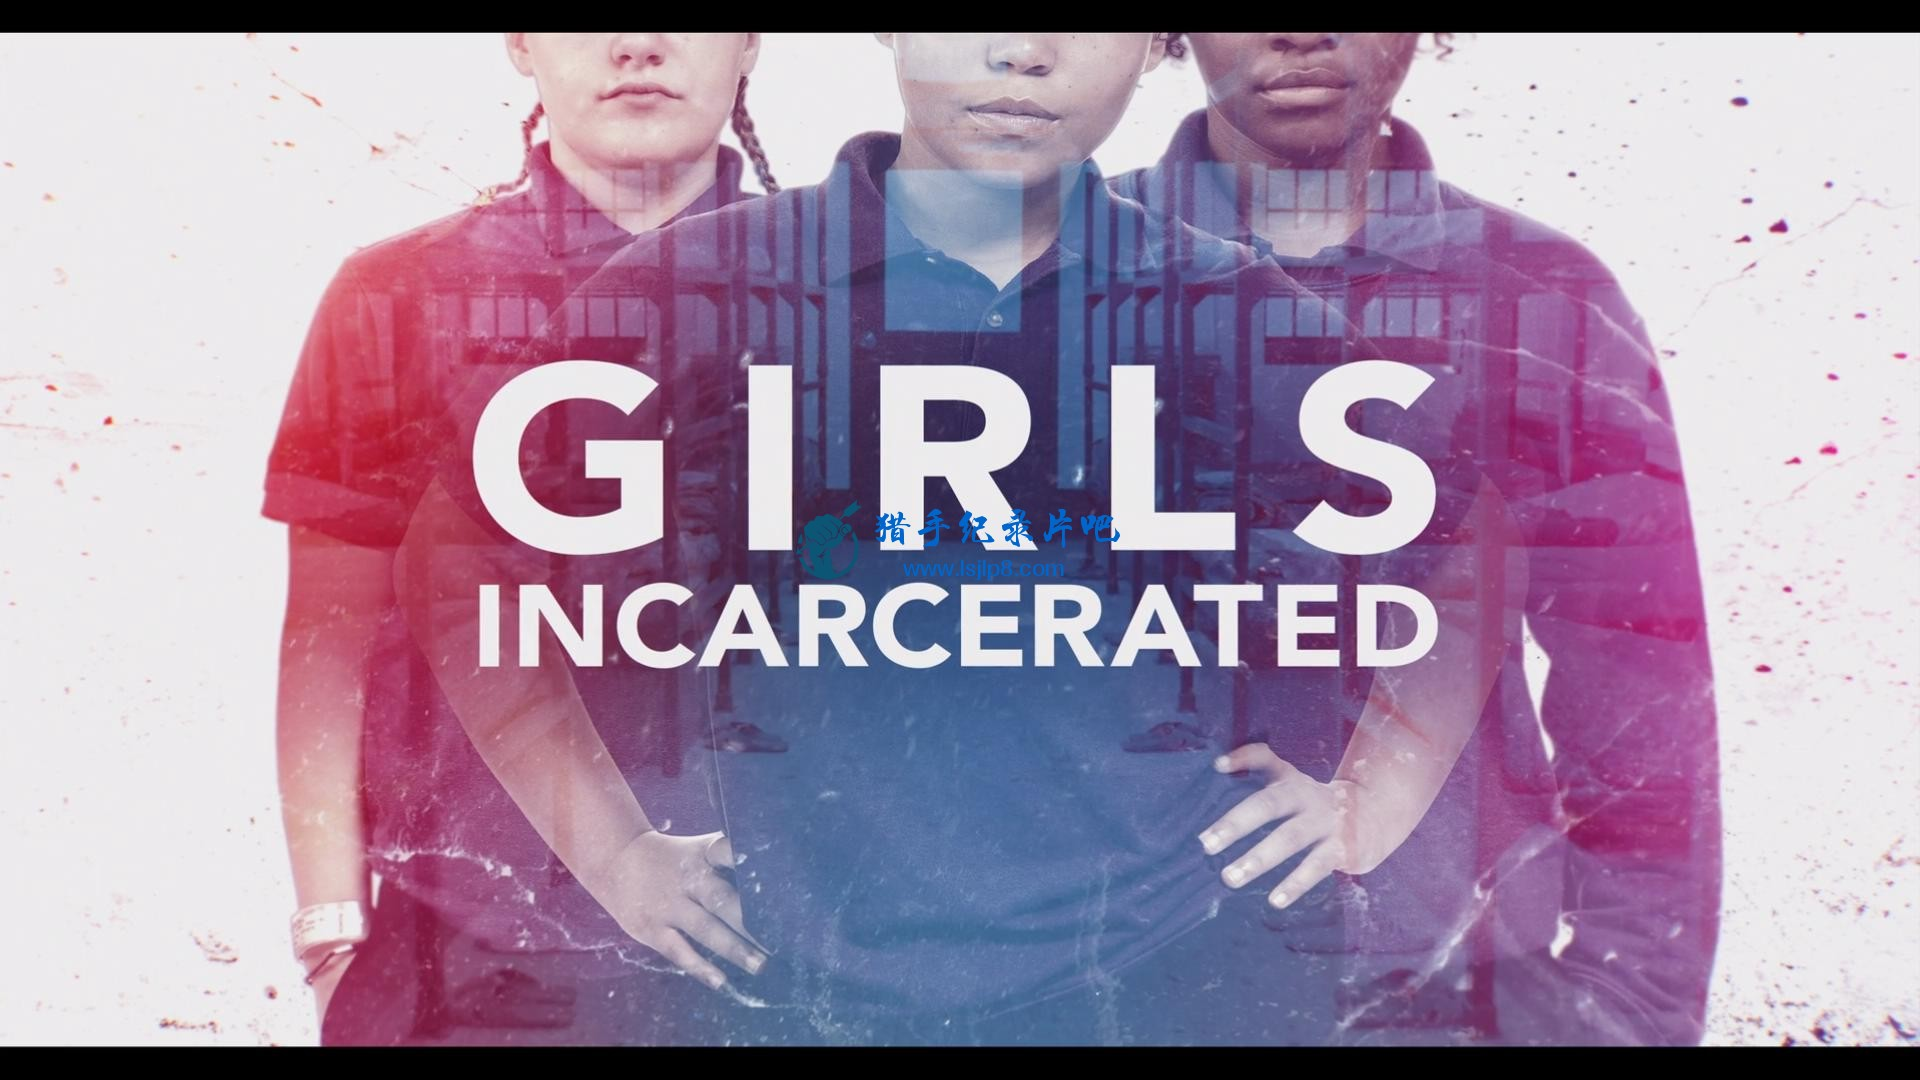 Girls.Incarcerated.S02E01.1080p.NF.WEB-DL.DDP5.1.x264-Ao.mkv_20200604_132122829.jpg